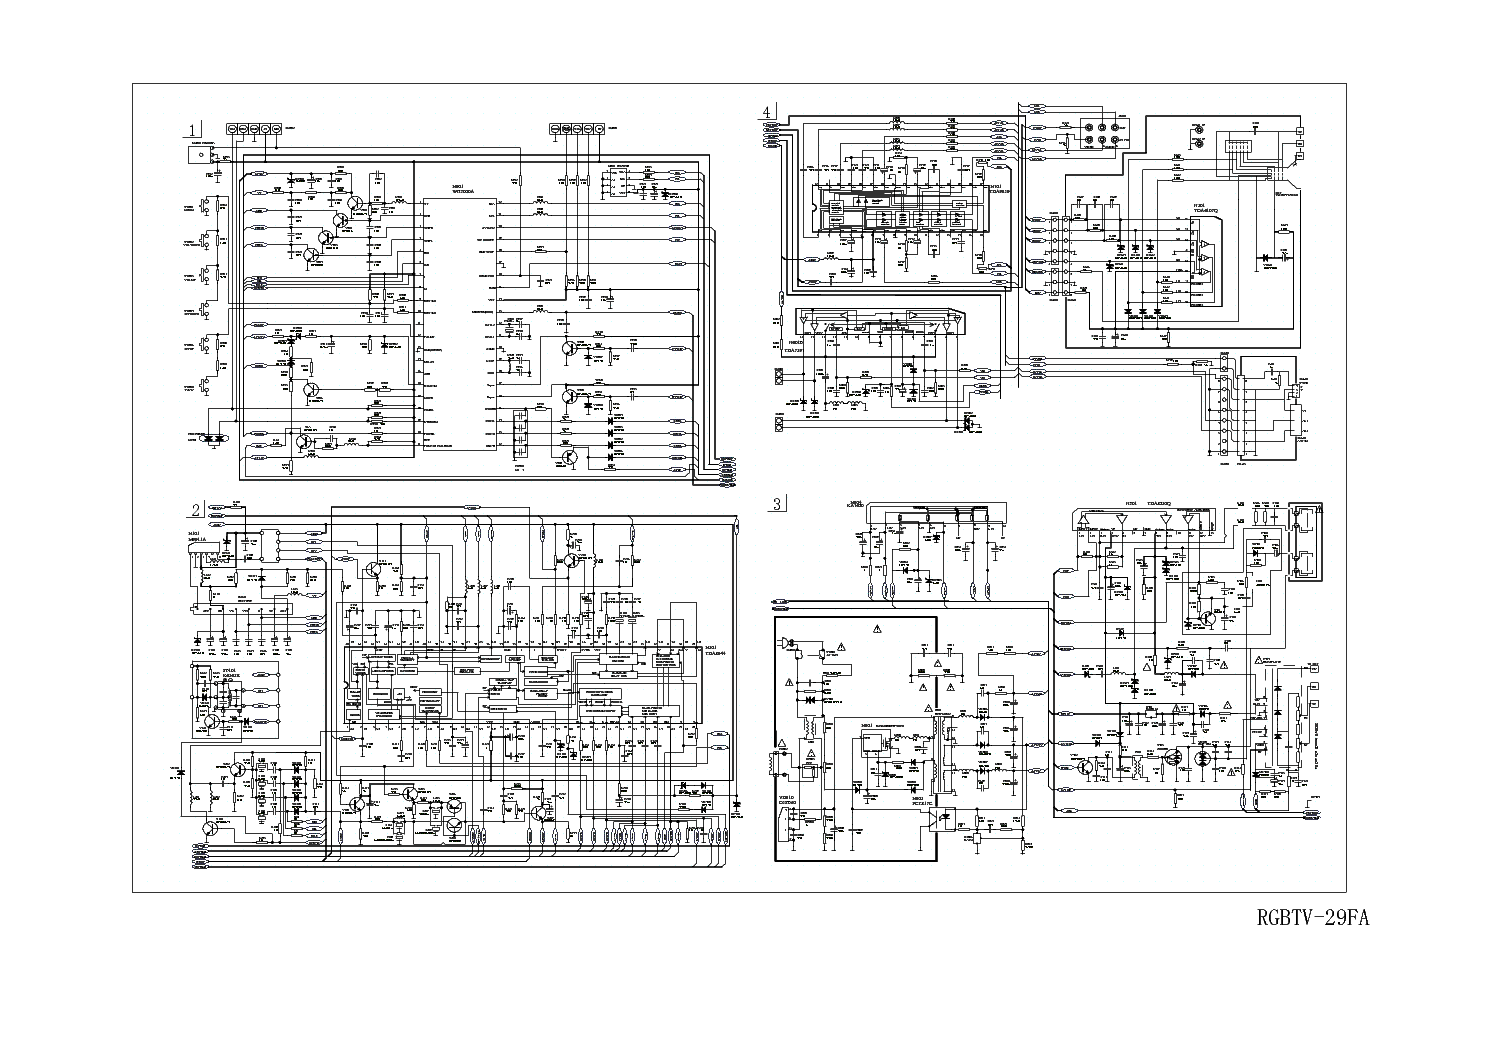 hight resolution of haier tv 29fa circuit diagram service manual download schematics sanyo tv schematic circuit diagram haier